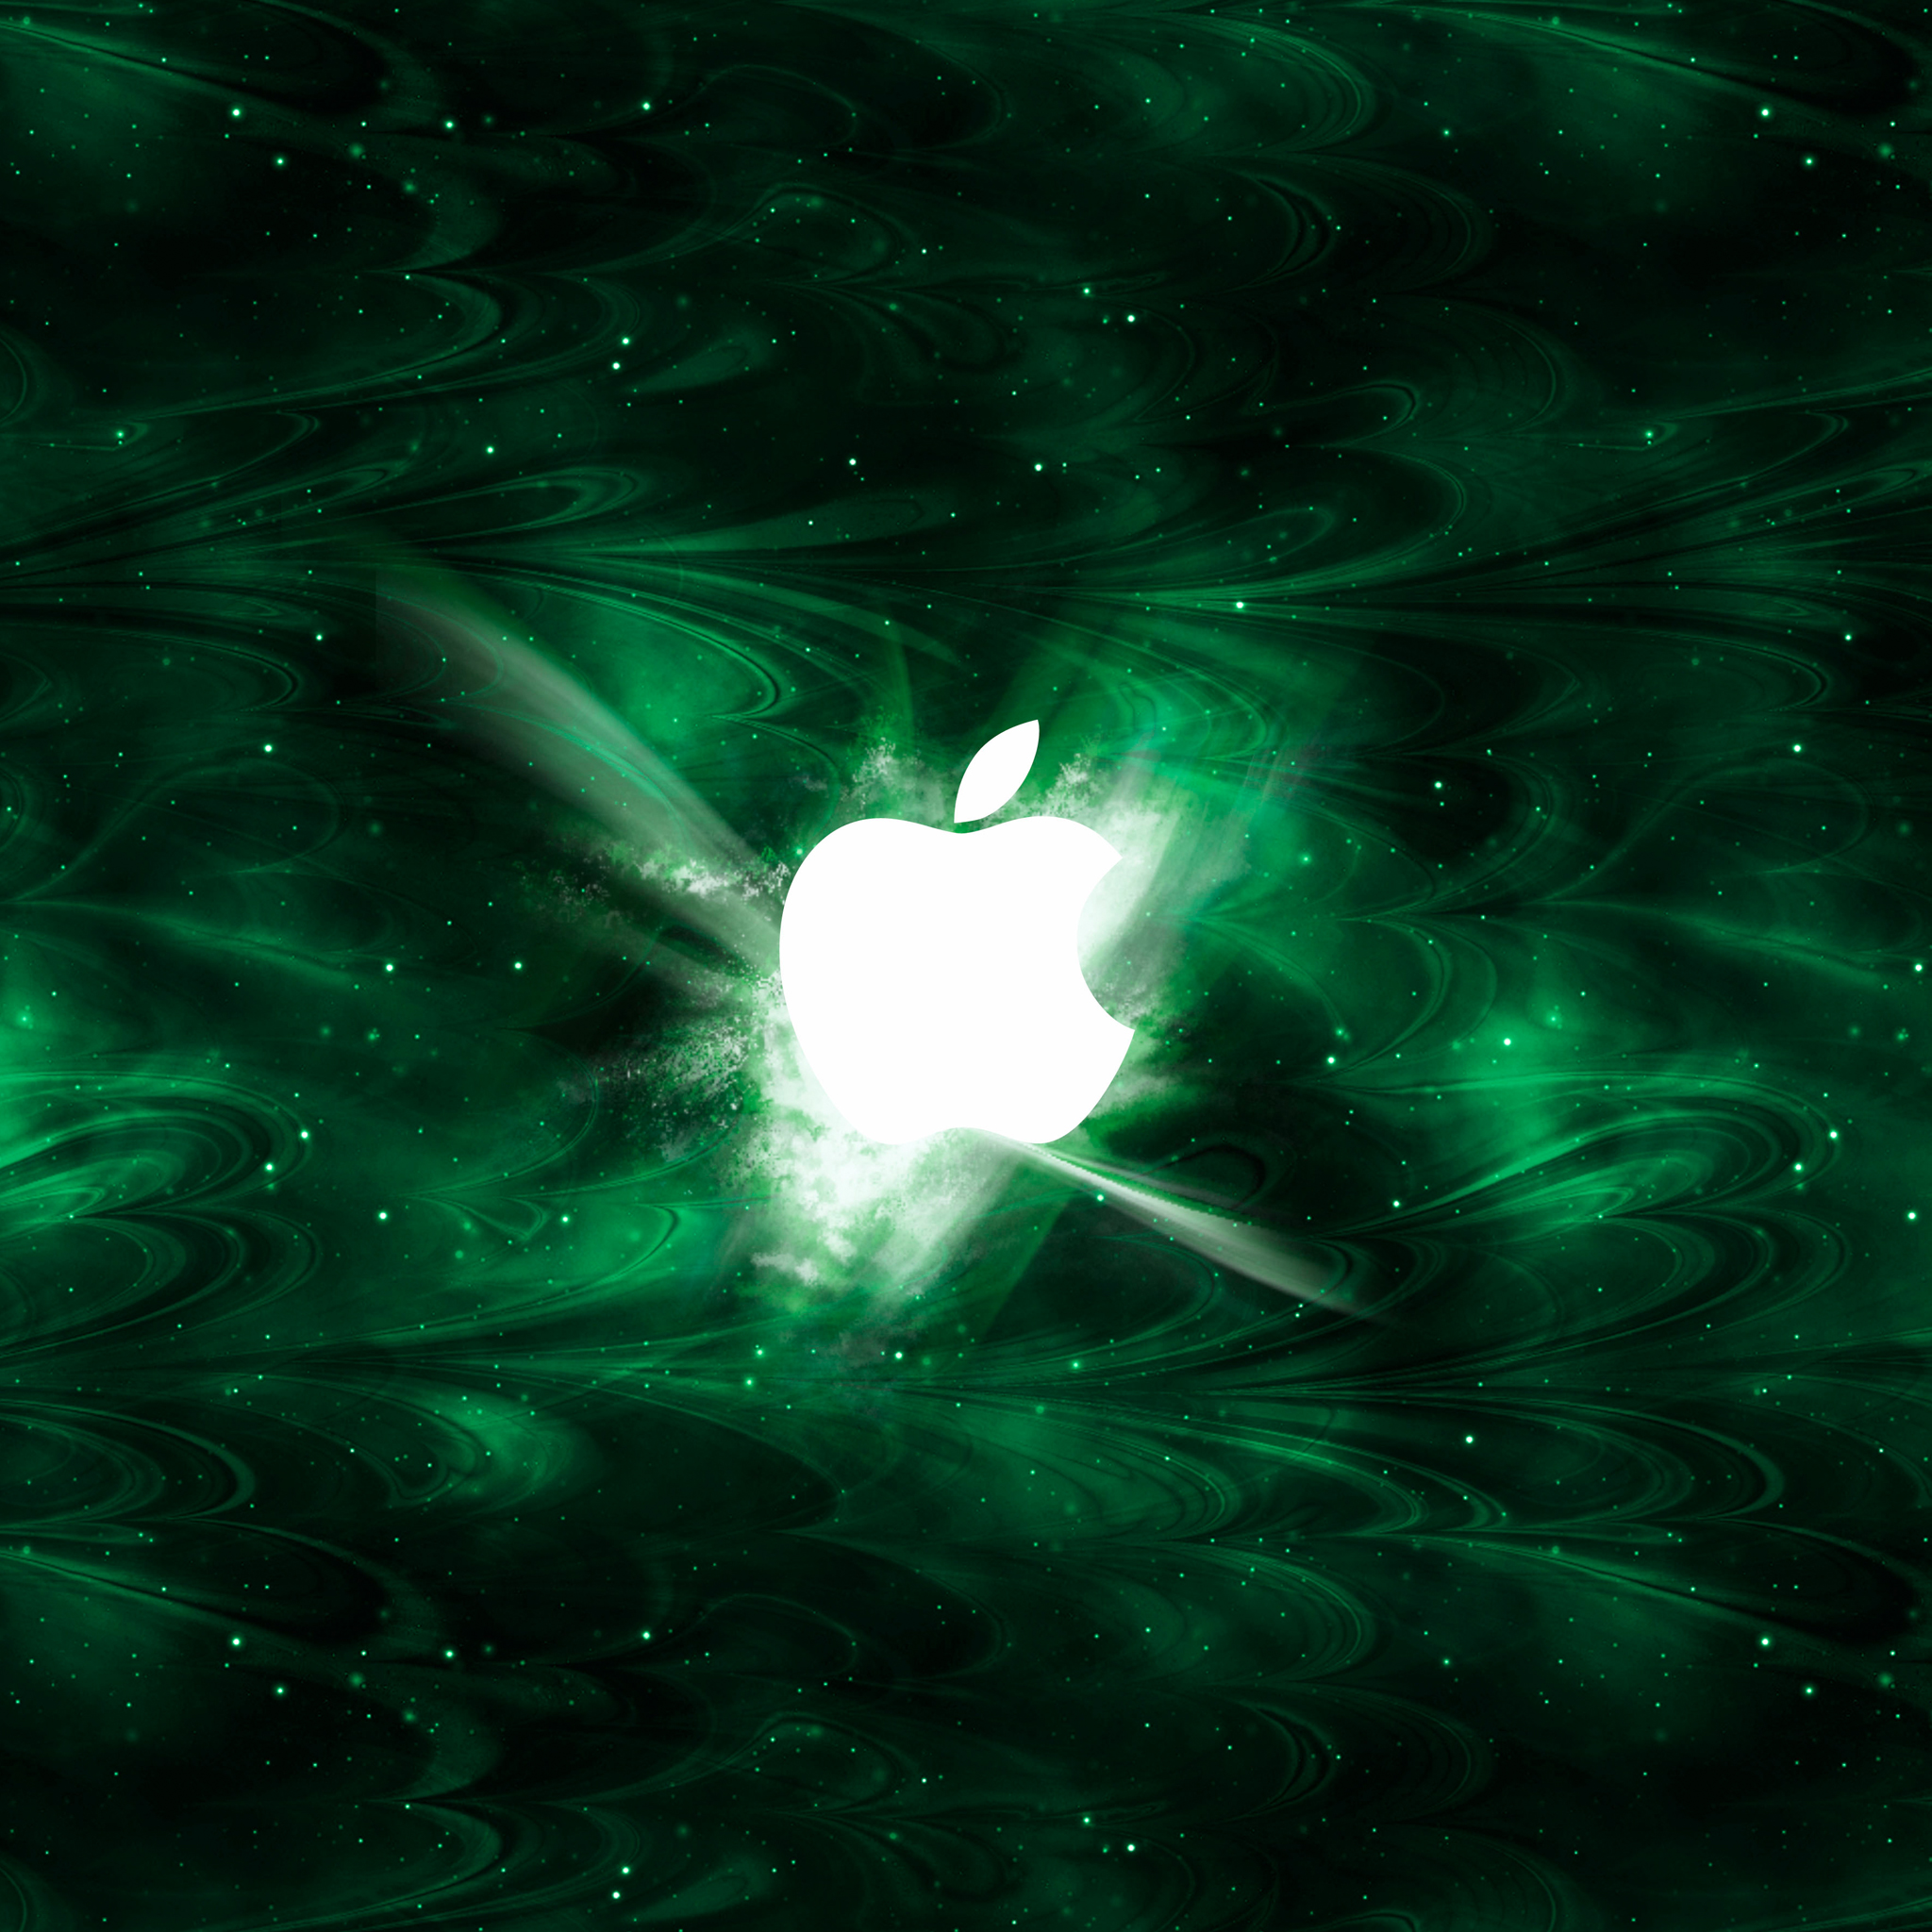 Green Smoked Apple 3Wallpapers iPad Green Smoked Apple   iPad